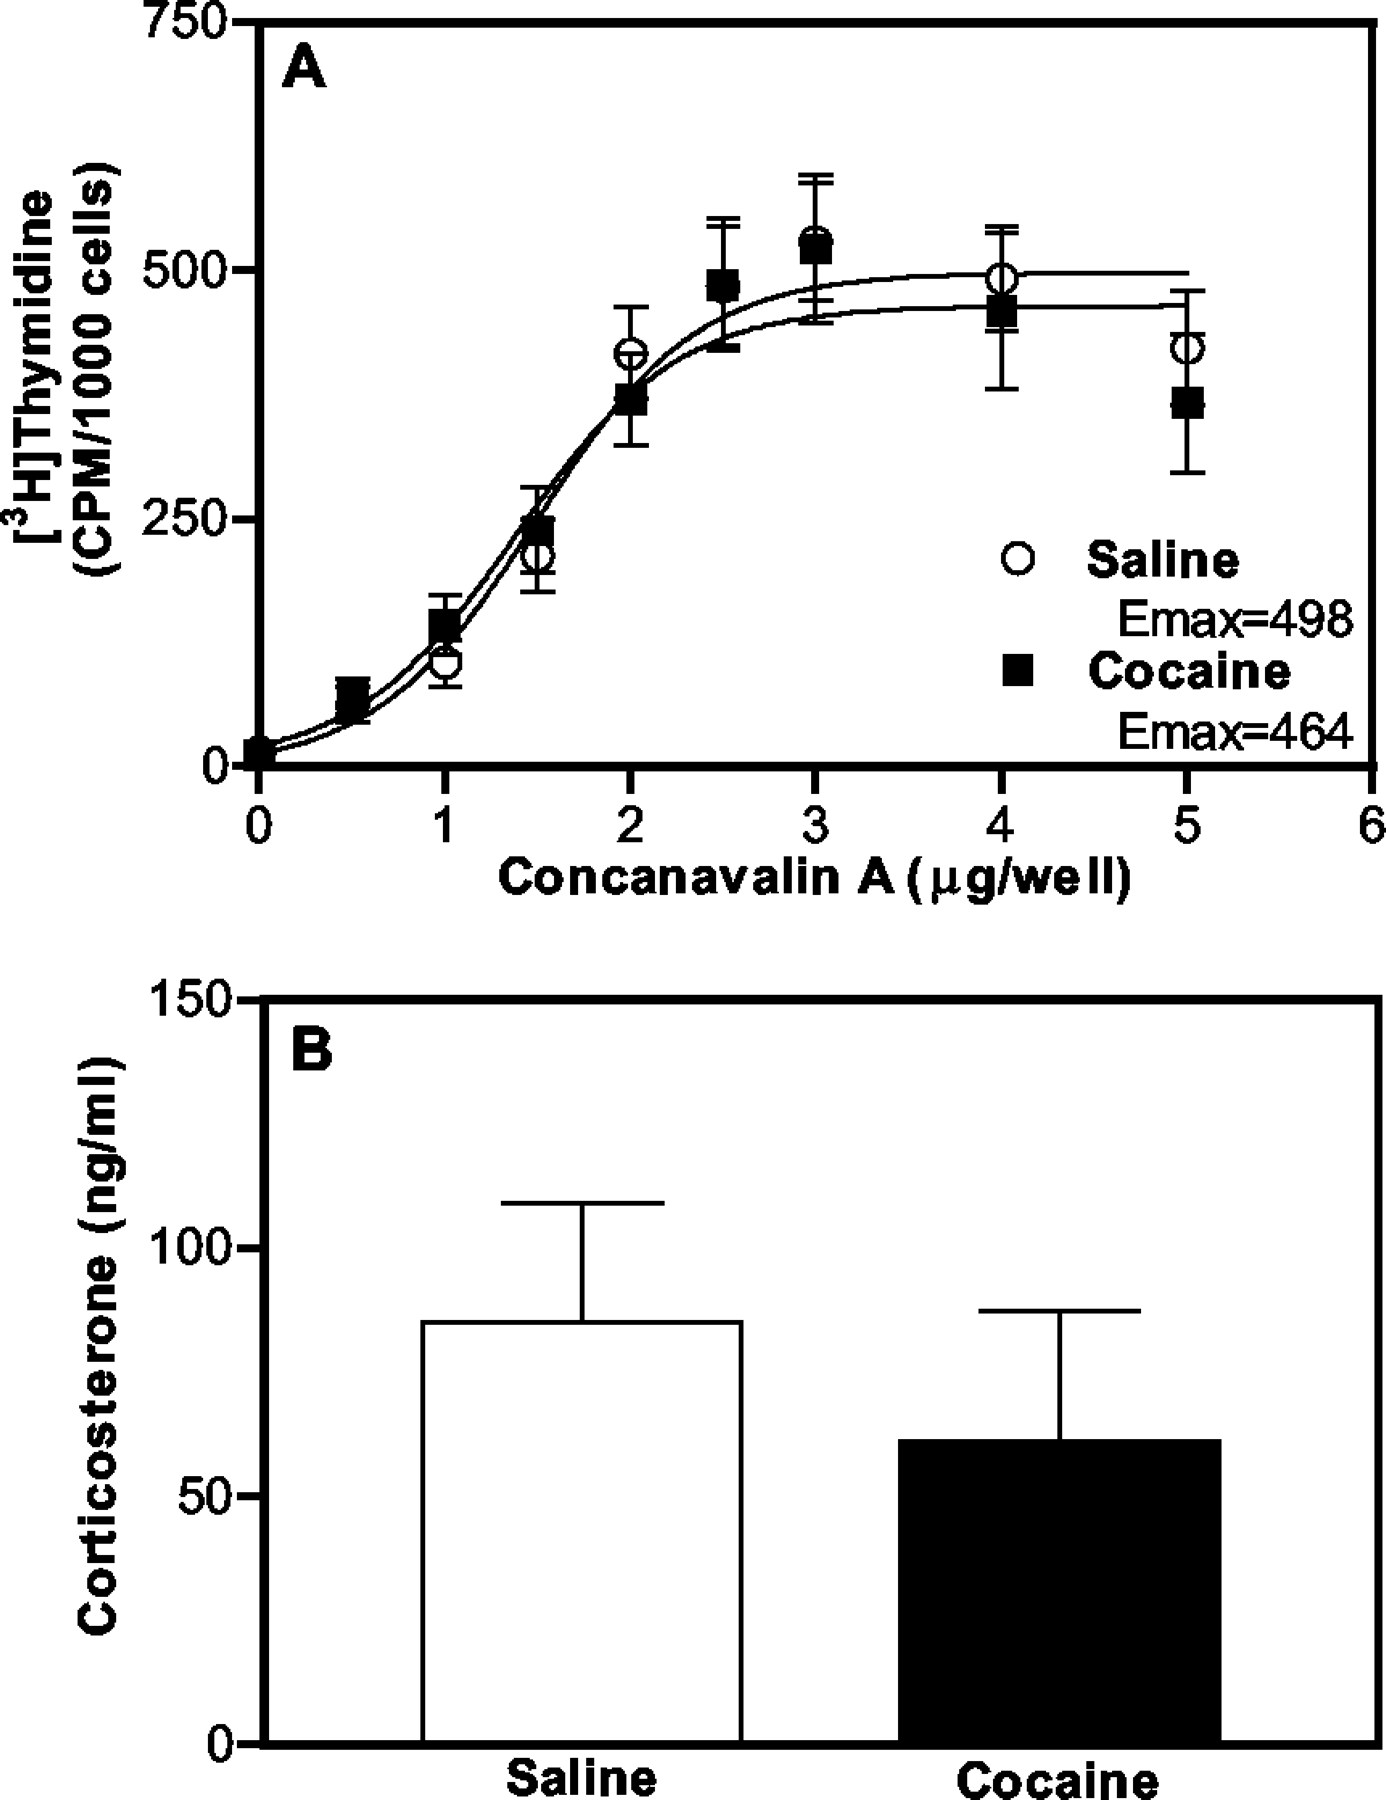 Stress-Induced Suppression of the Immune System after